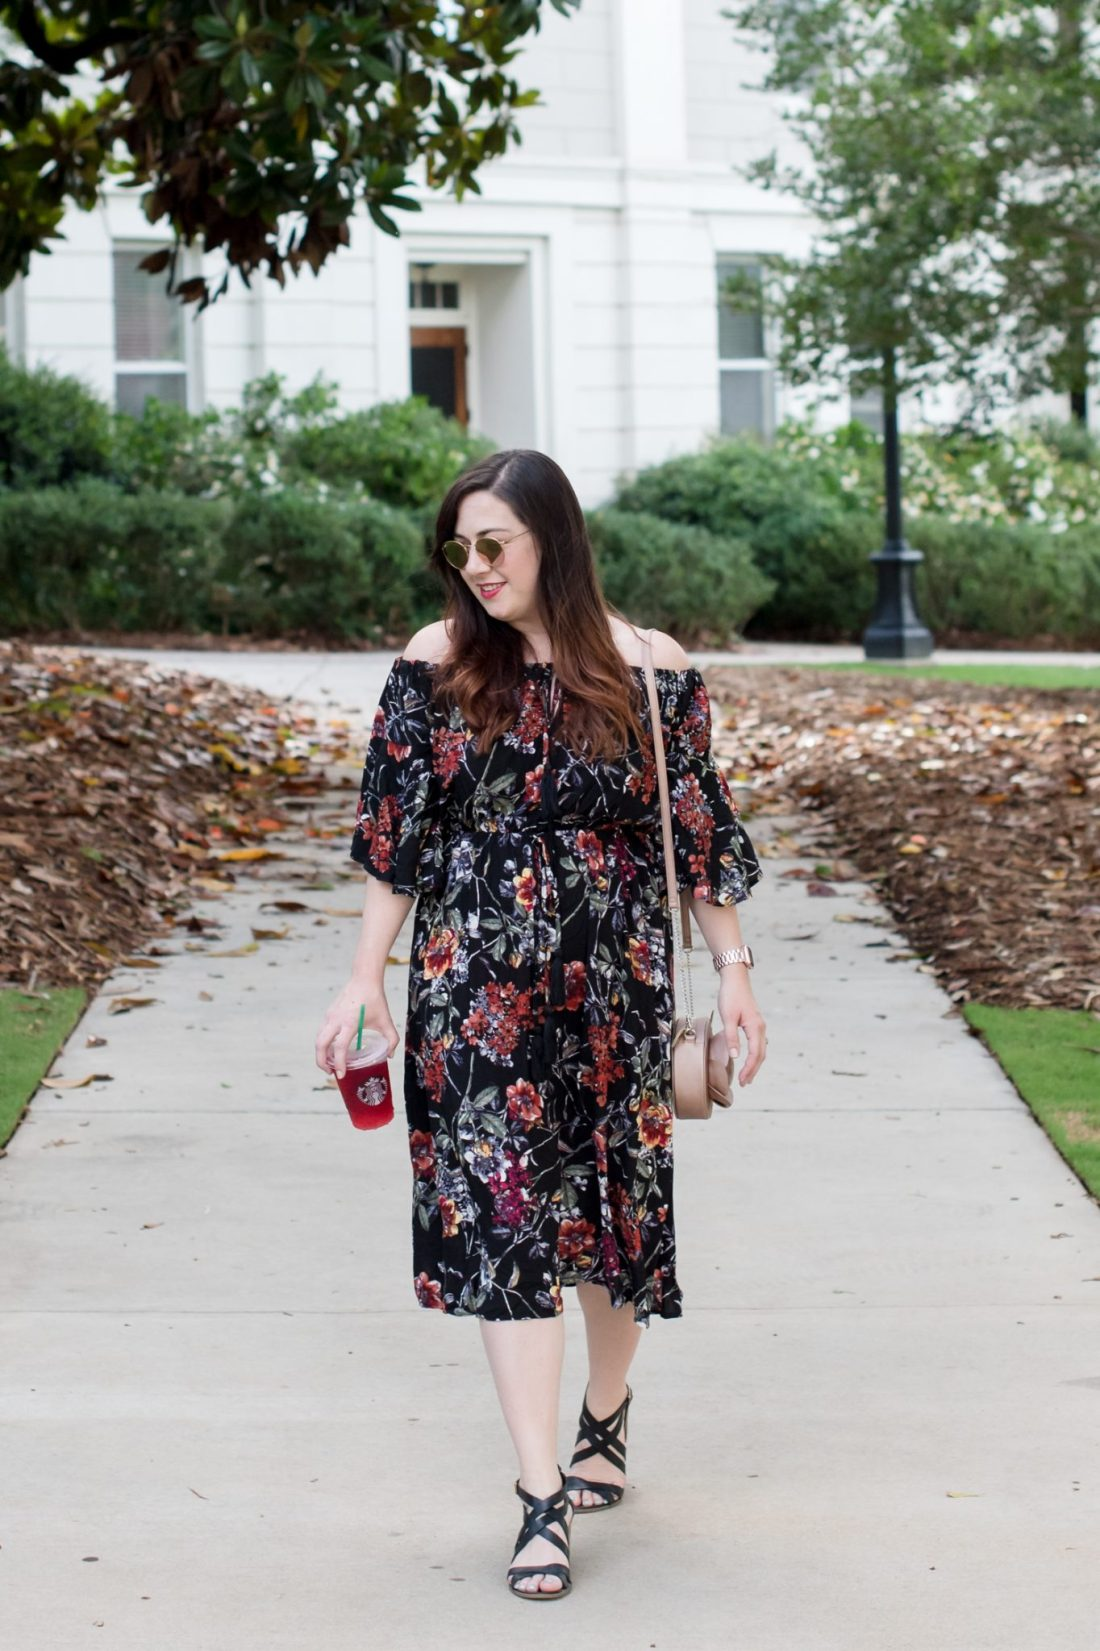 A Flirty Floral Dress via @missmollymoon